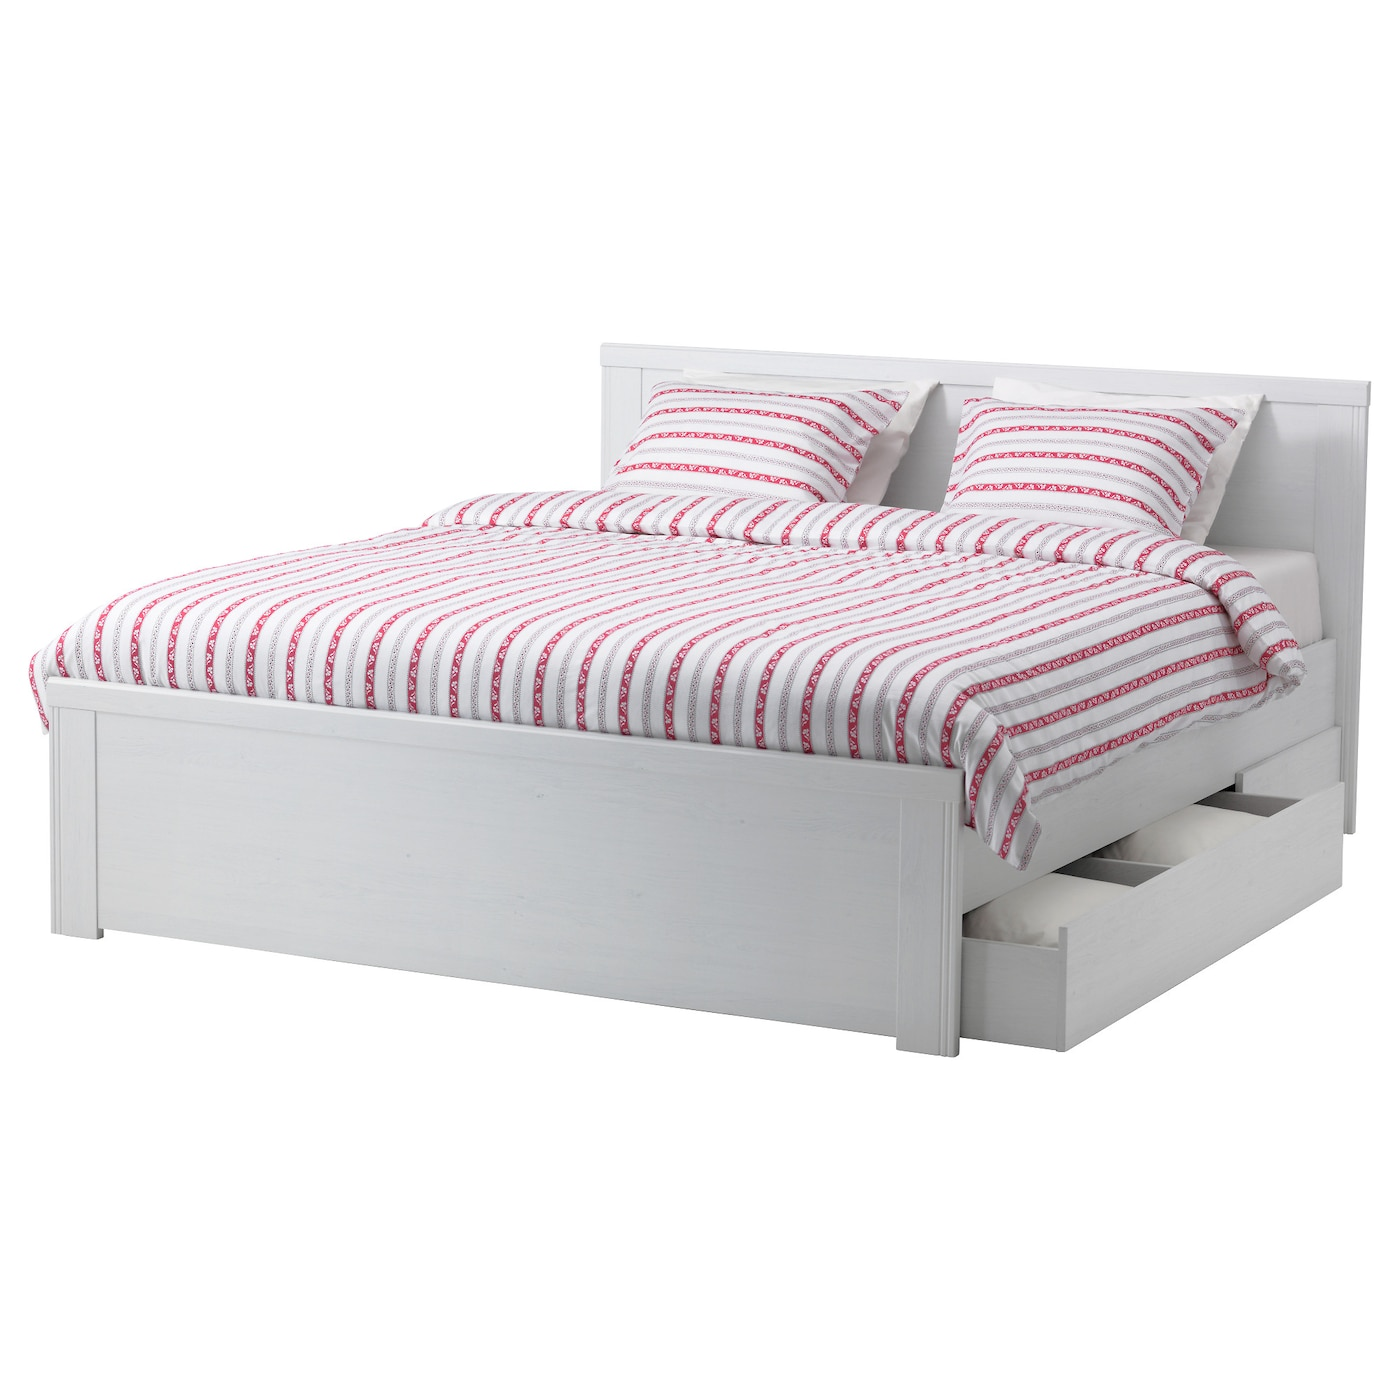 Brusali Bed Frame With 2 Storage Boxes White 140x200 Cm Ikea